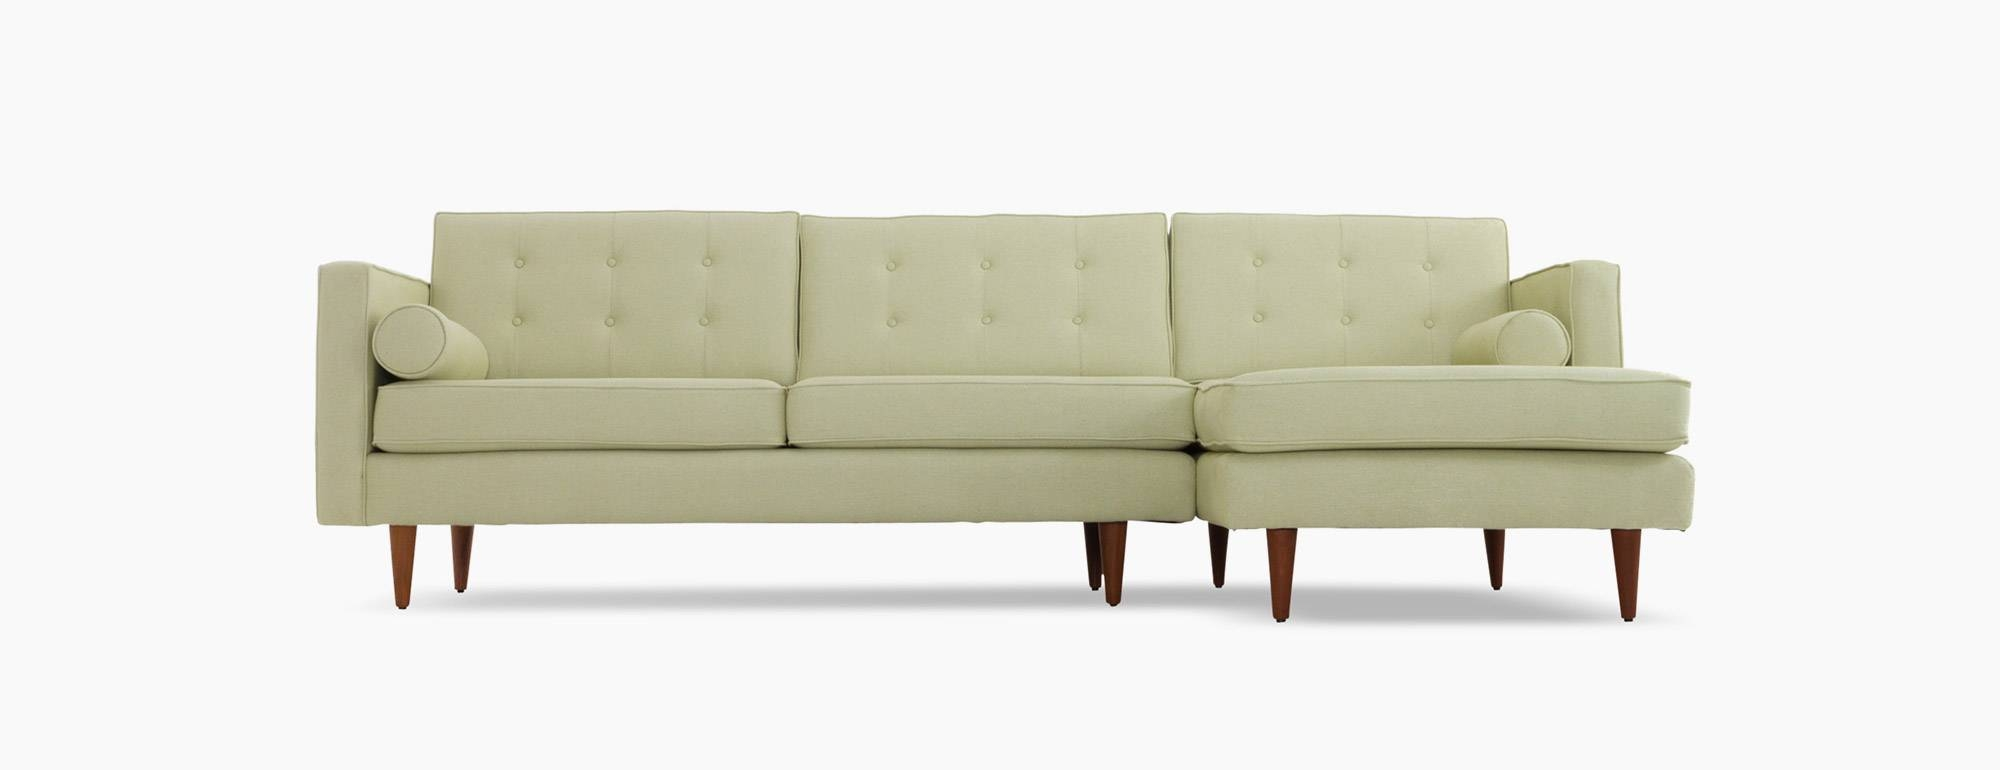 Braxton Sectional | Joybird intended for Braxton Sectional Sofa (Image 15 of 30)